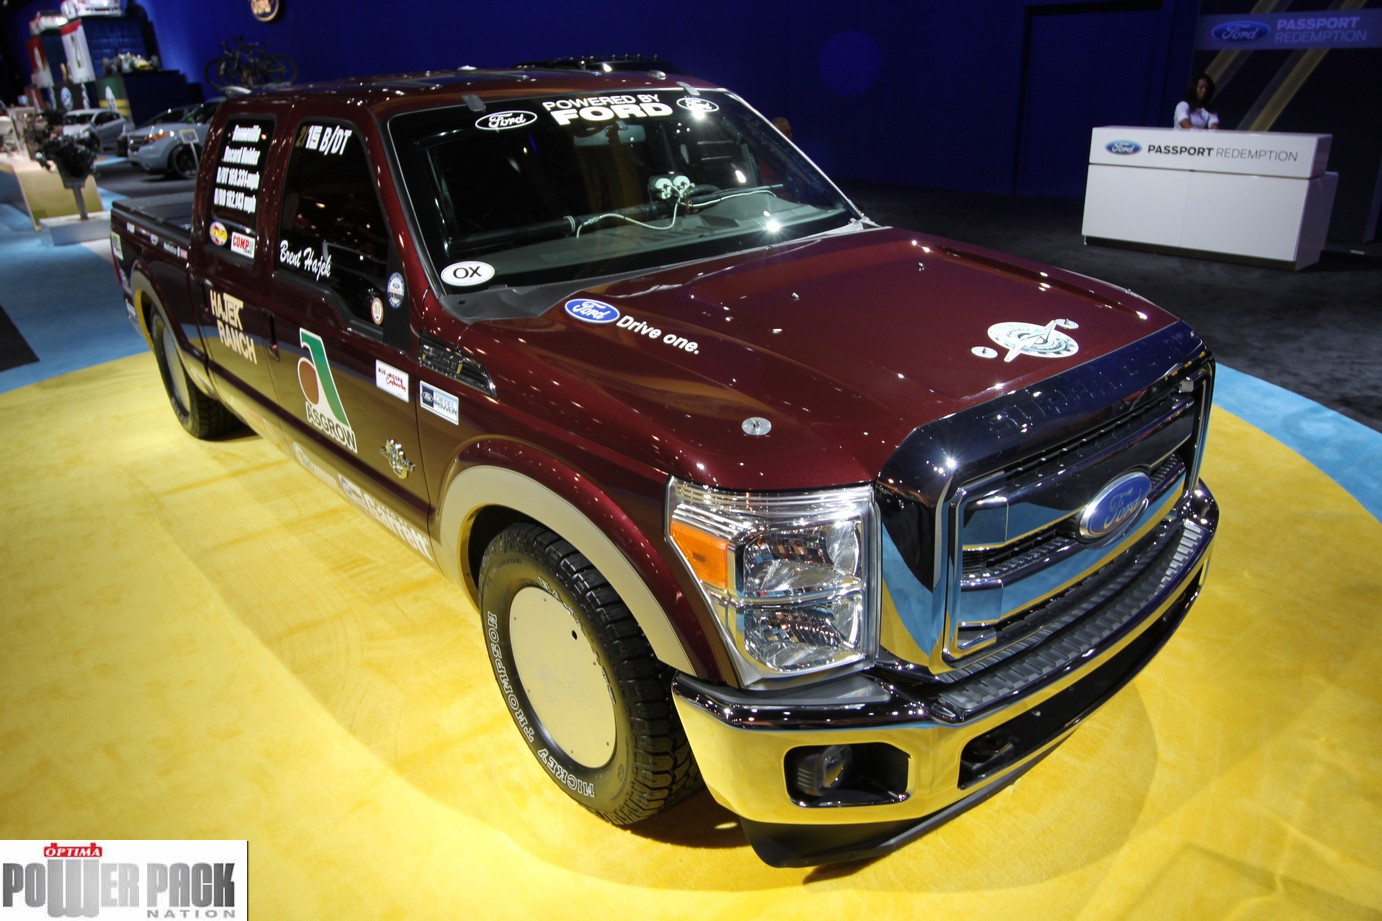 The World's Fastest F-250 Starts With An OPTIMA